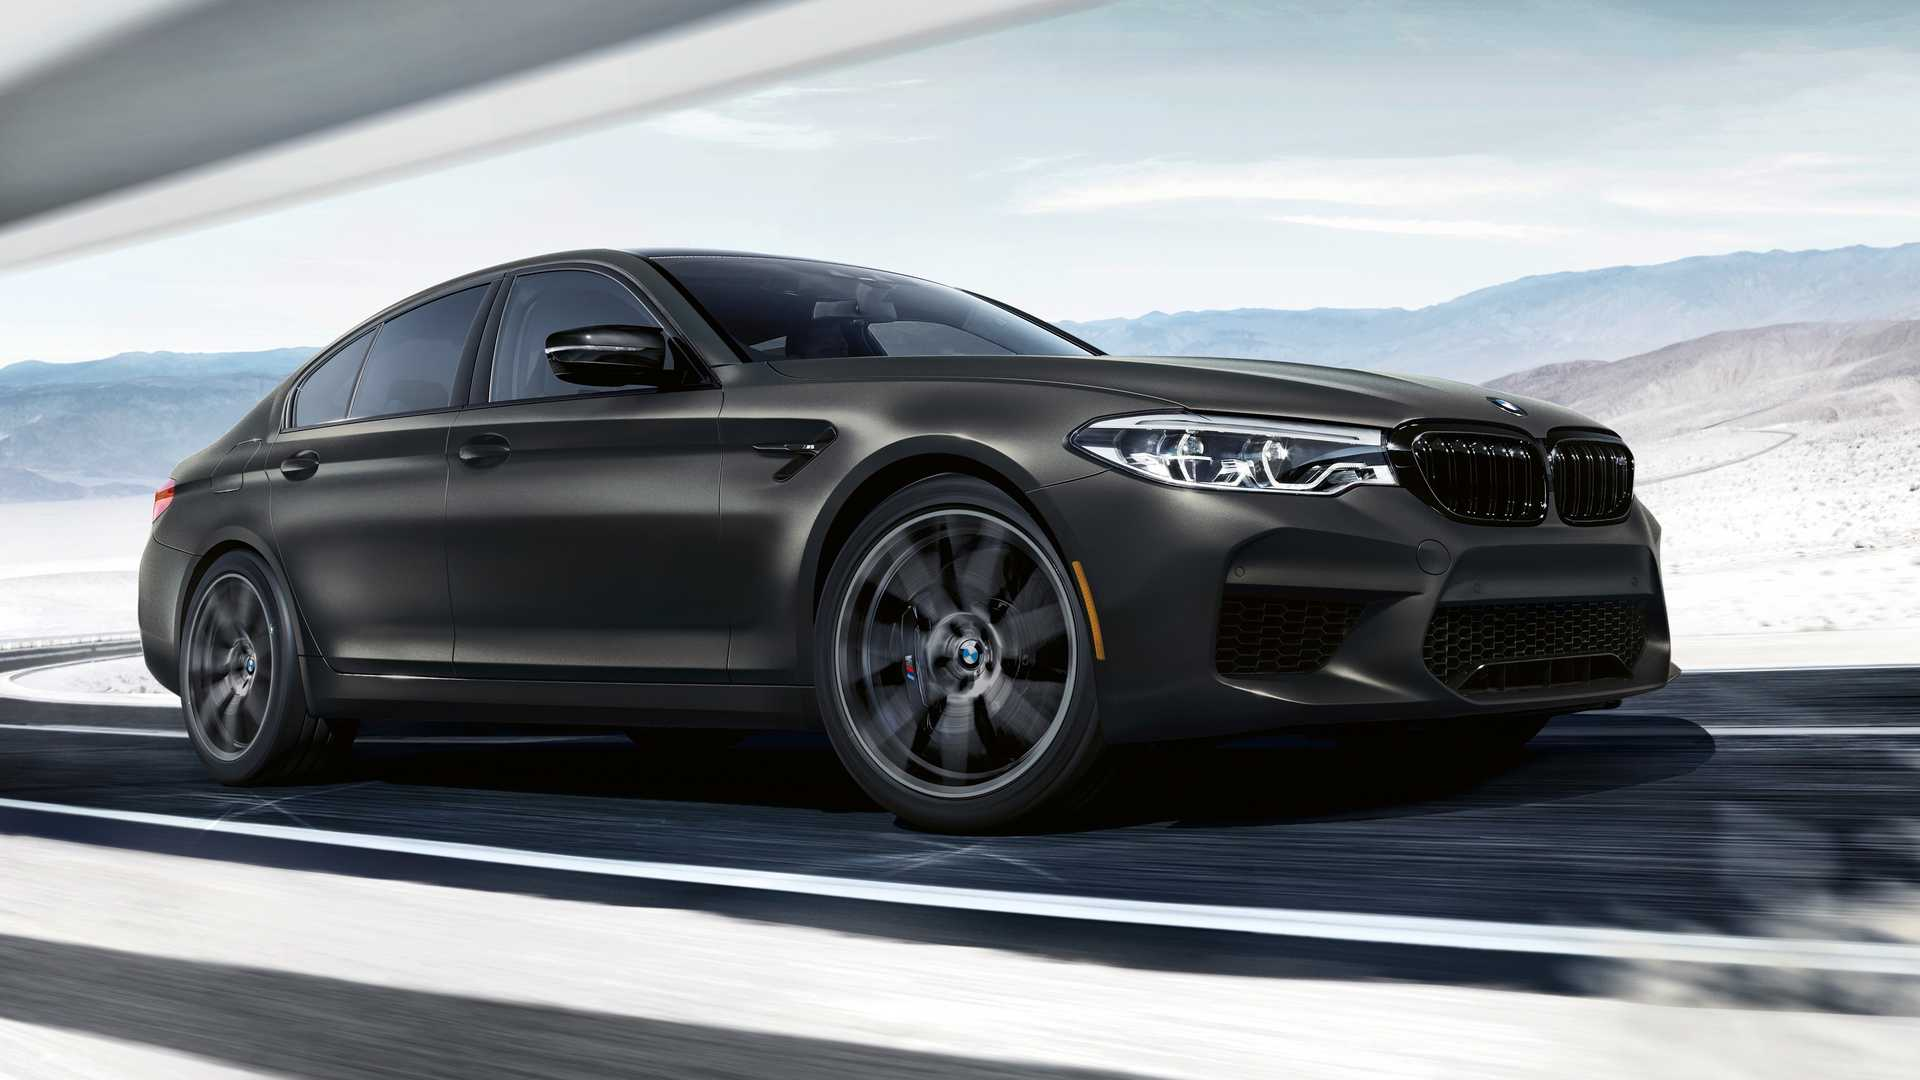 83 Concept of Bmw M5 2020 Picture with Bmw M5 2020